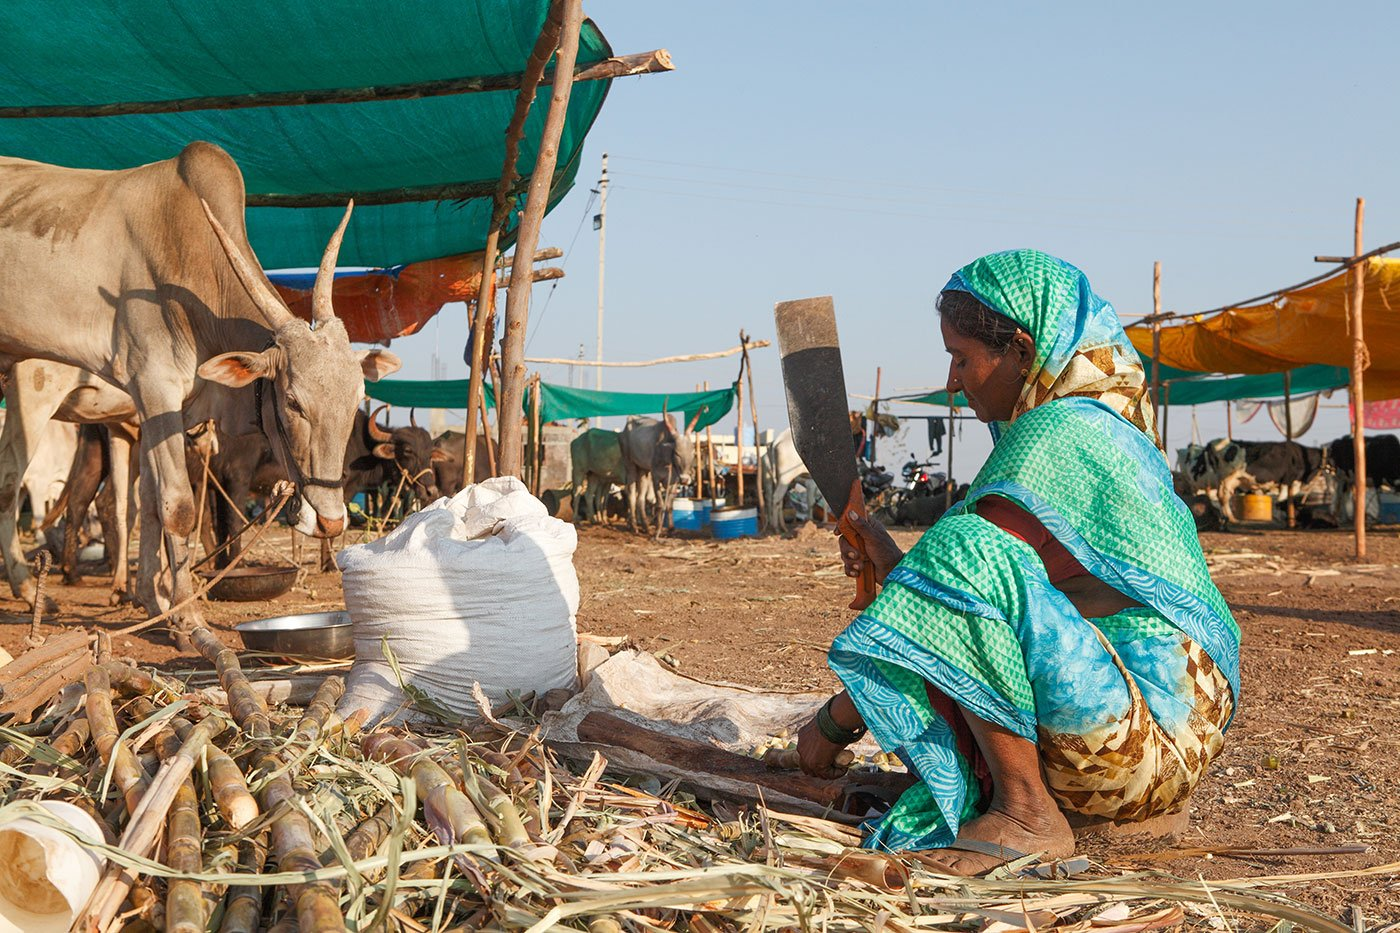 Lakshmi cutting sugarcane for fodder to feed her cows